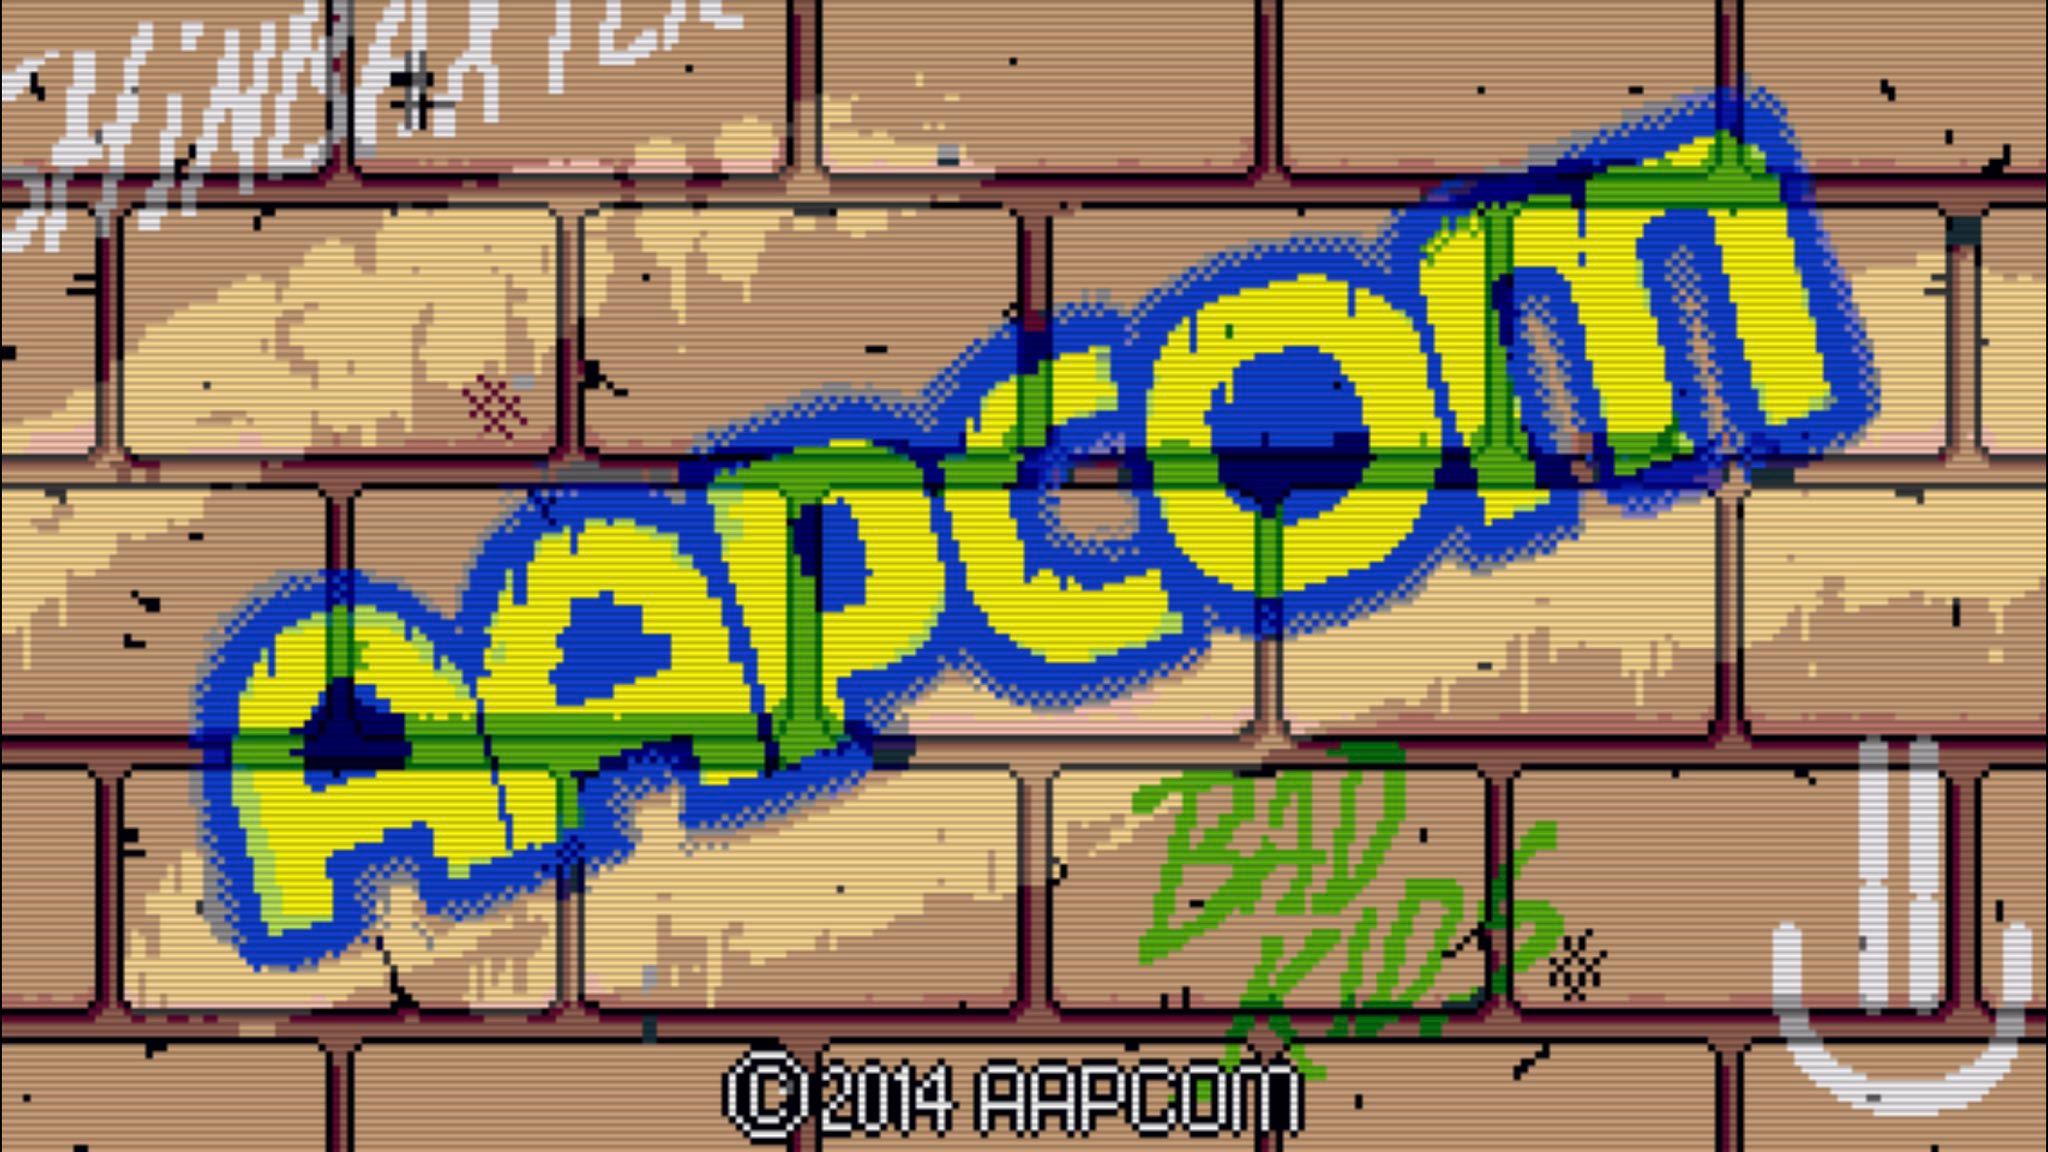 Flappy Fighter 1 out of 6 image gallery